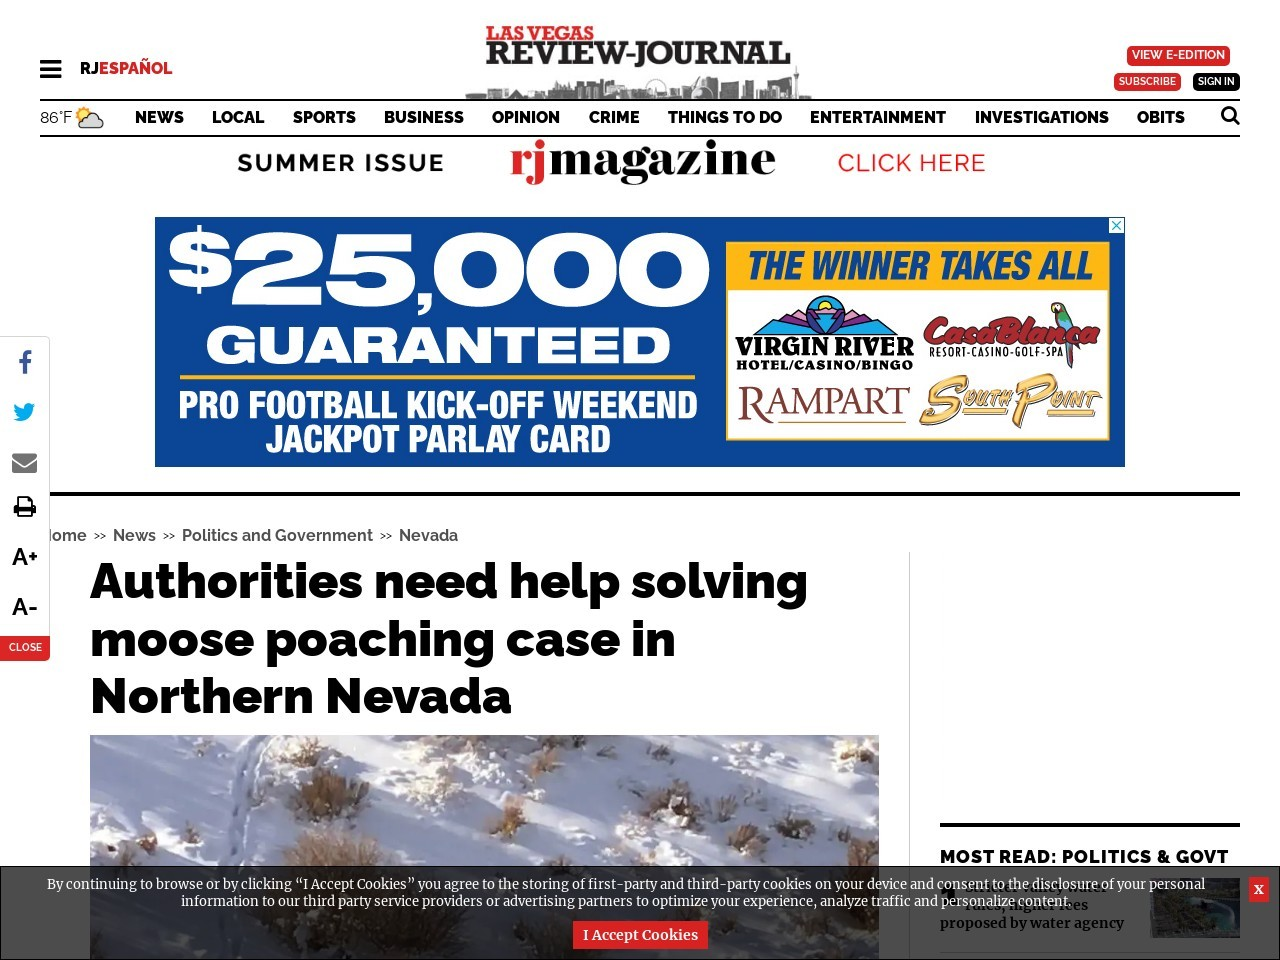 Authorities need help solving moose poaching case in Northern Nevada